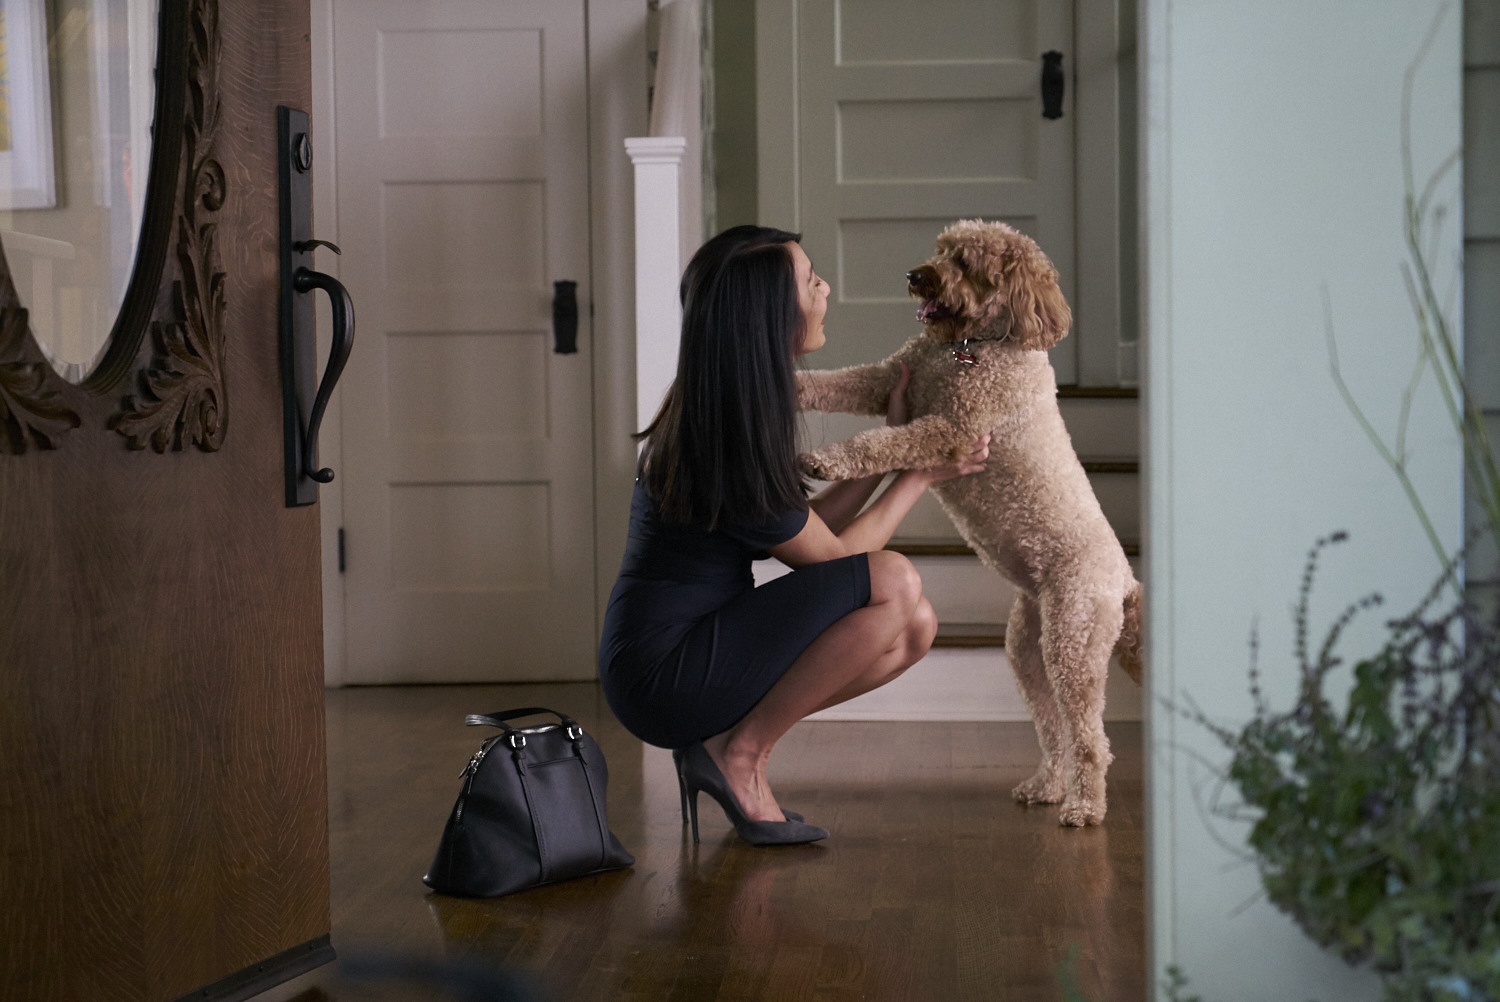 51_Dog_With_Woman_6135 (3)